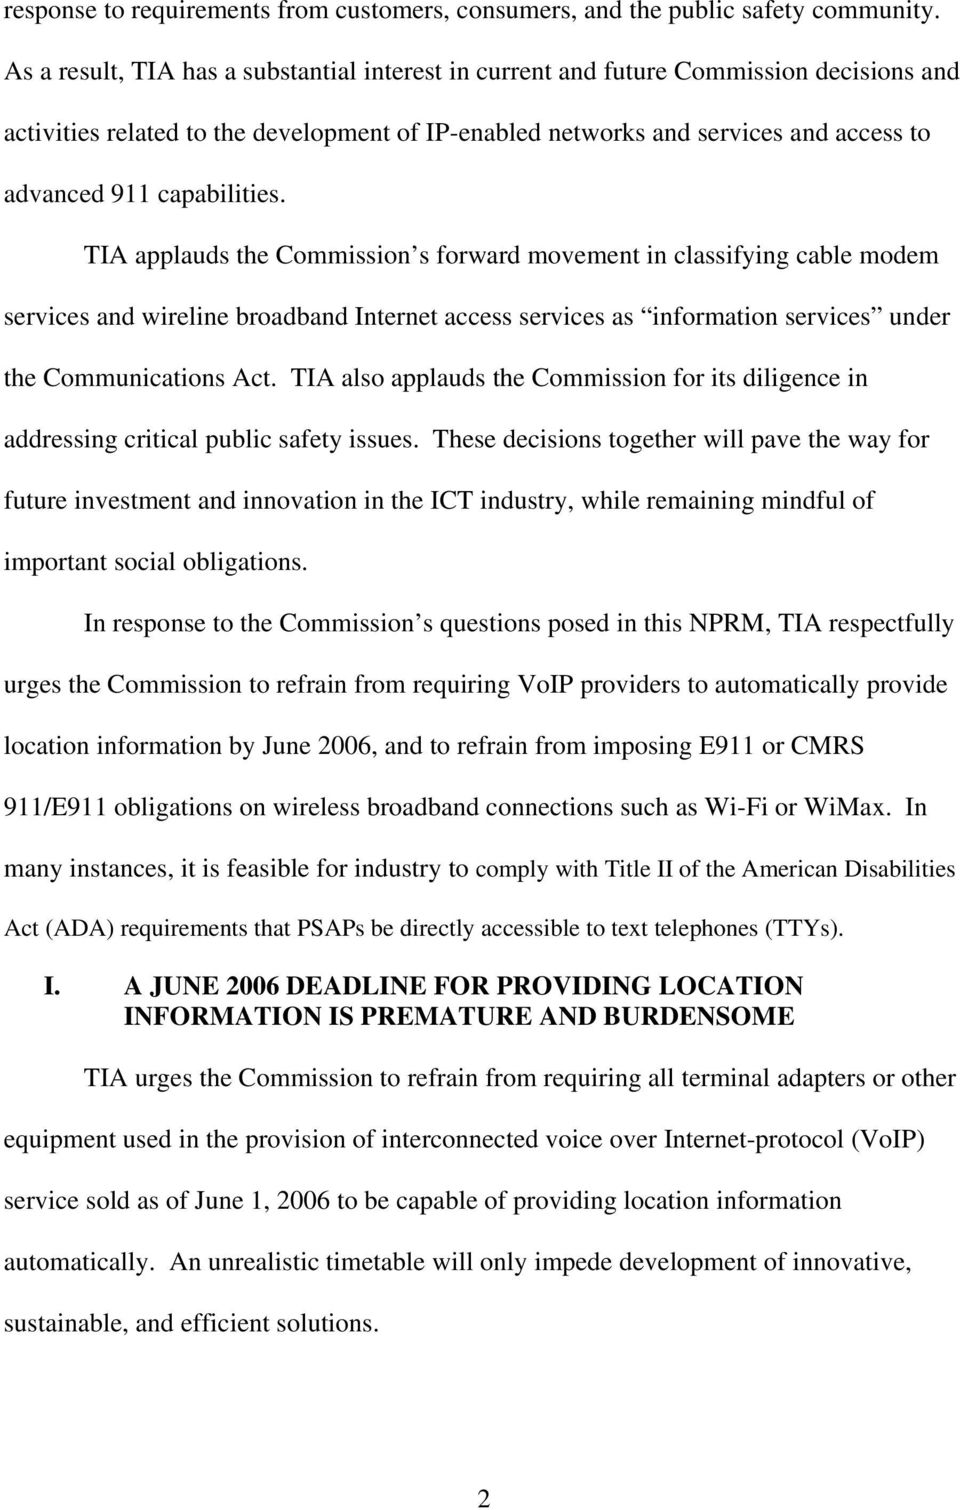 capabilities. TIA applauds the Commission s forward movement in classifying cable modem services and wireline broadband Internet access services as information services under the Communications Act.